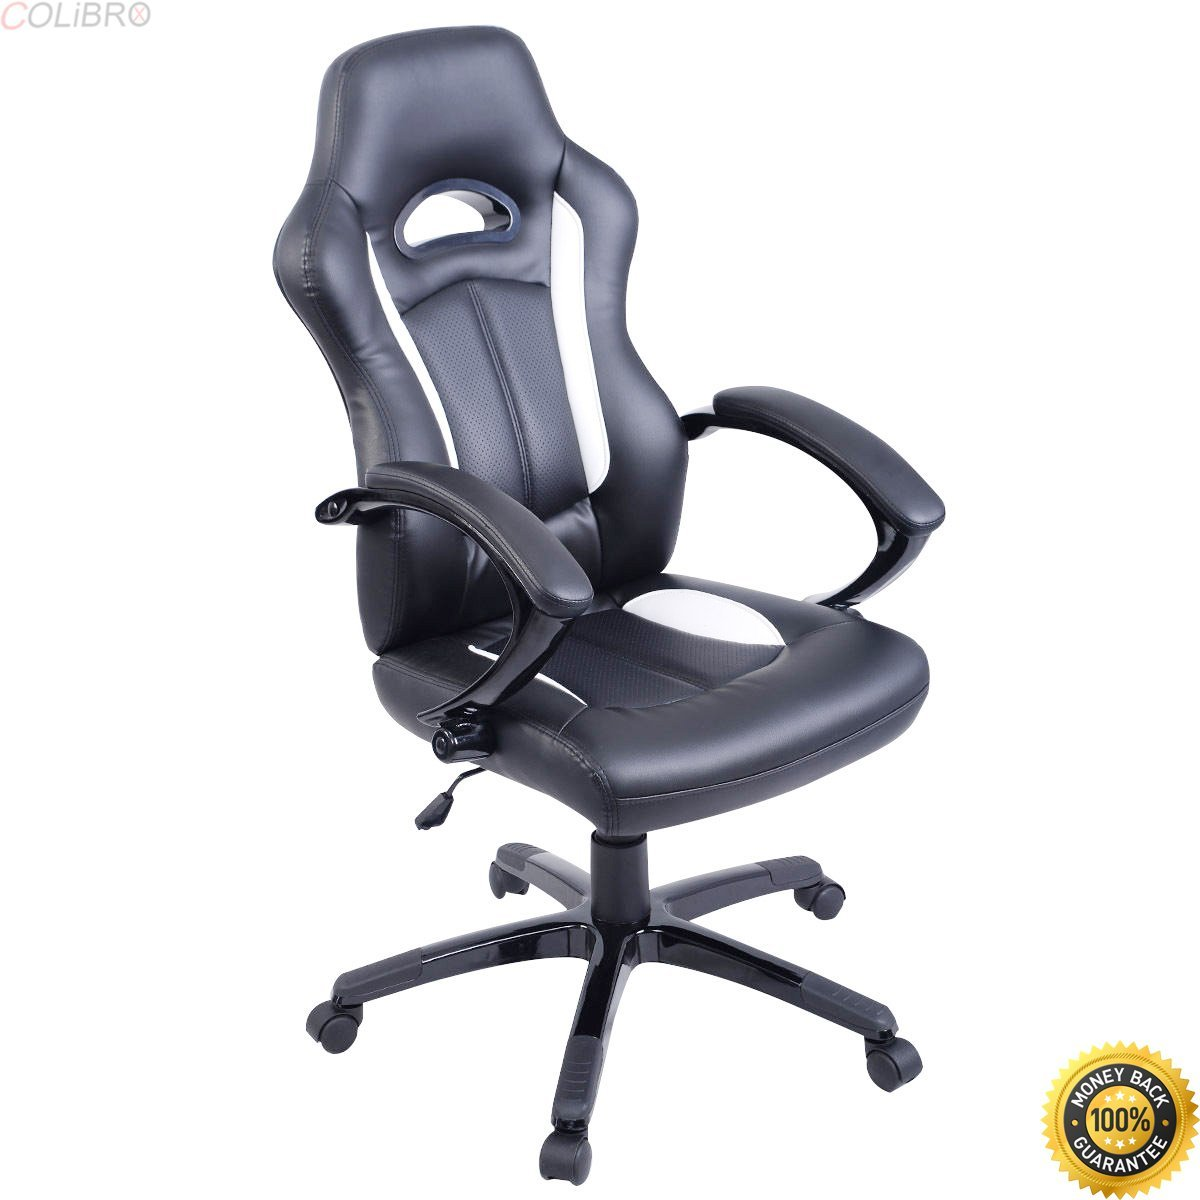 desk chair tesco swivel arm covers cheap gaming chairs find deals on line at get quotations colibrox high back race car style bucket seat office new